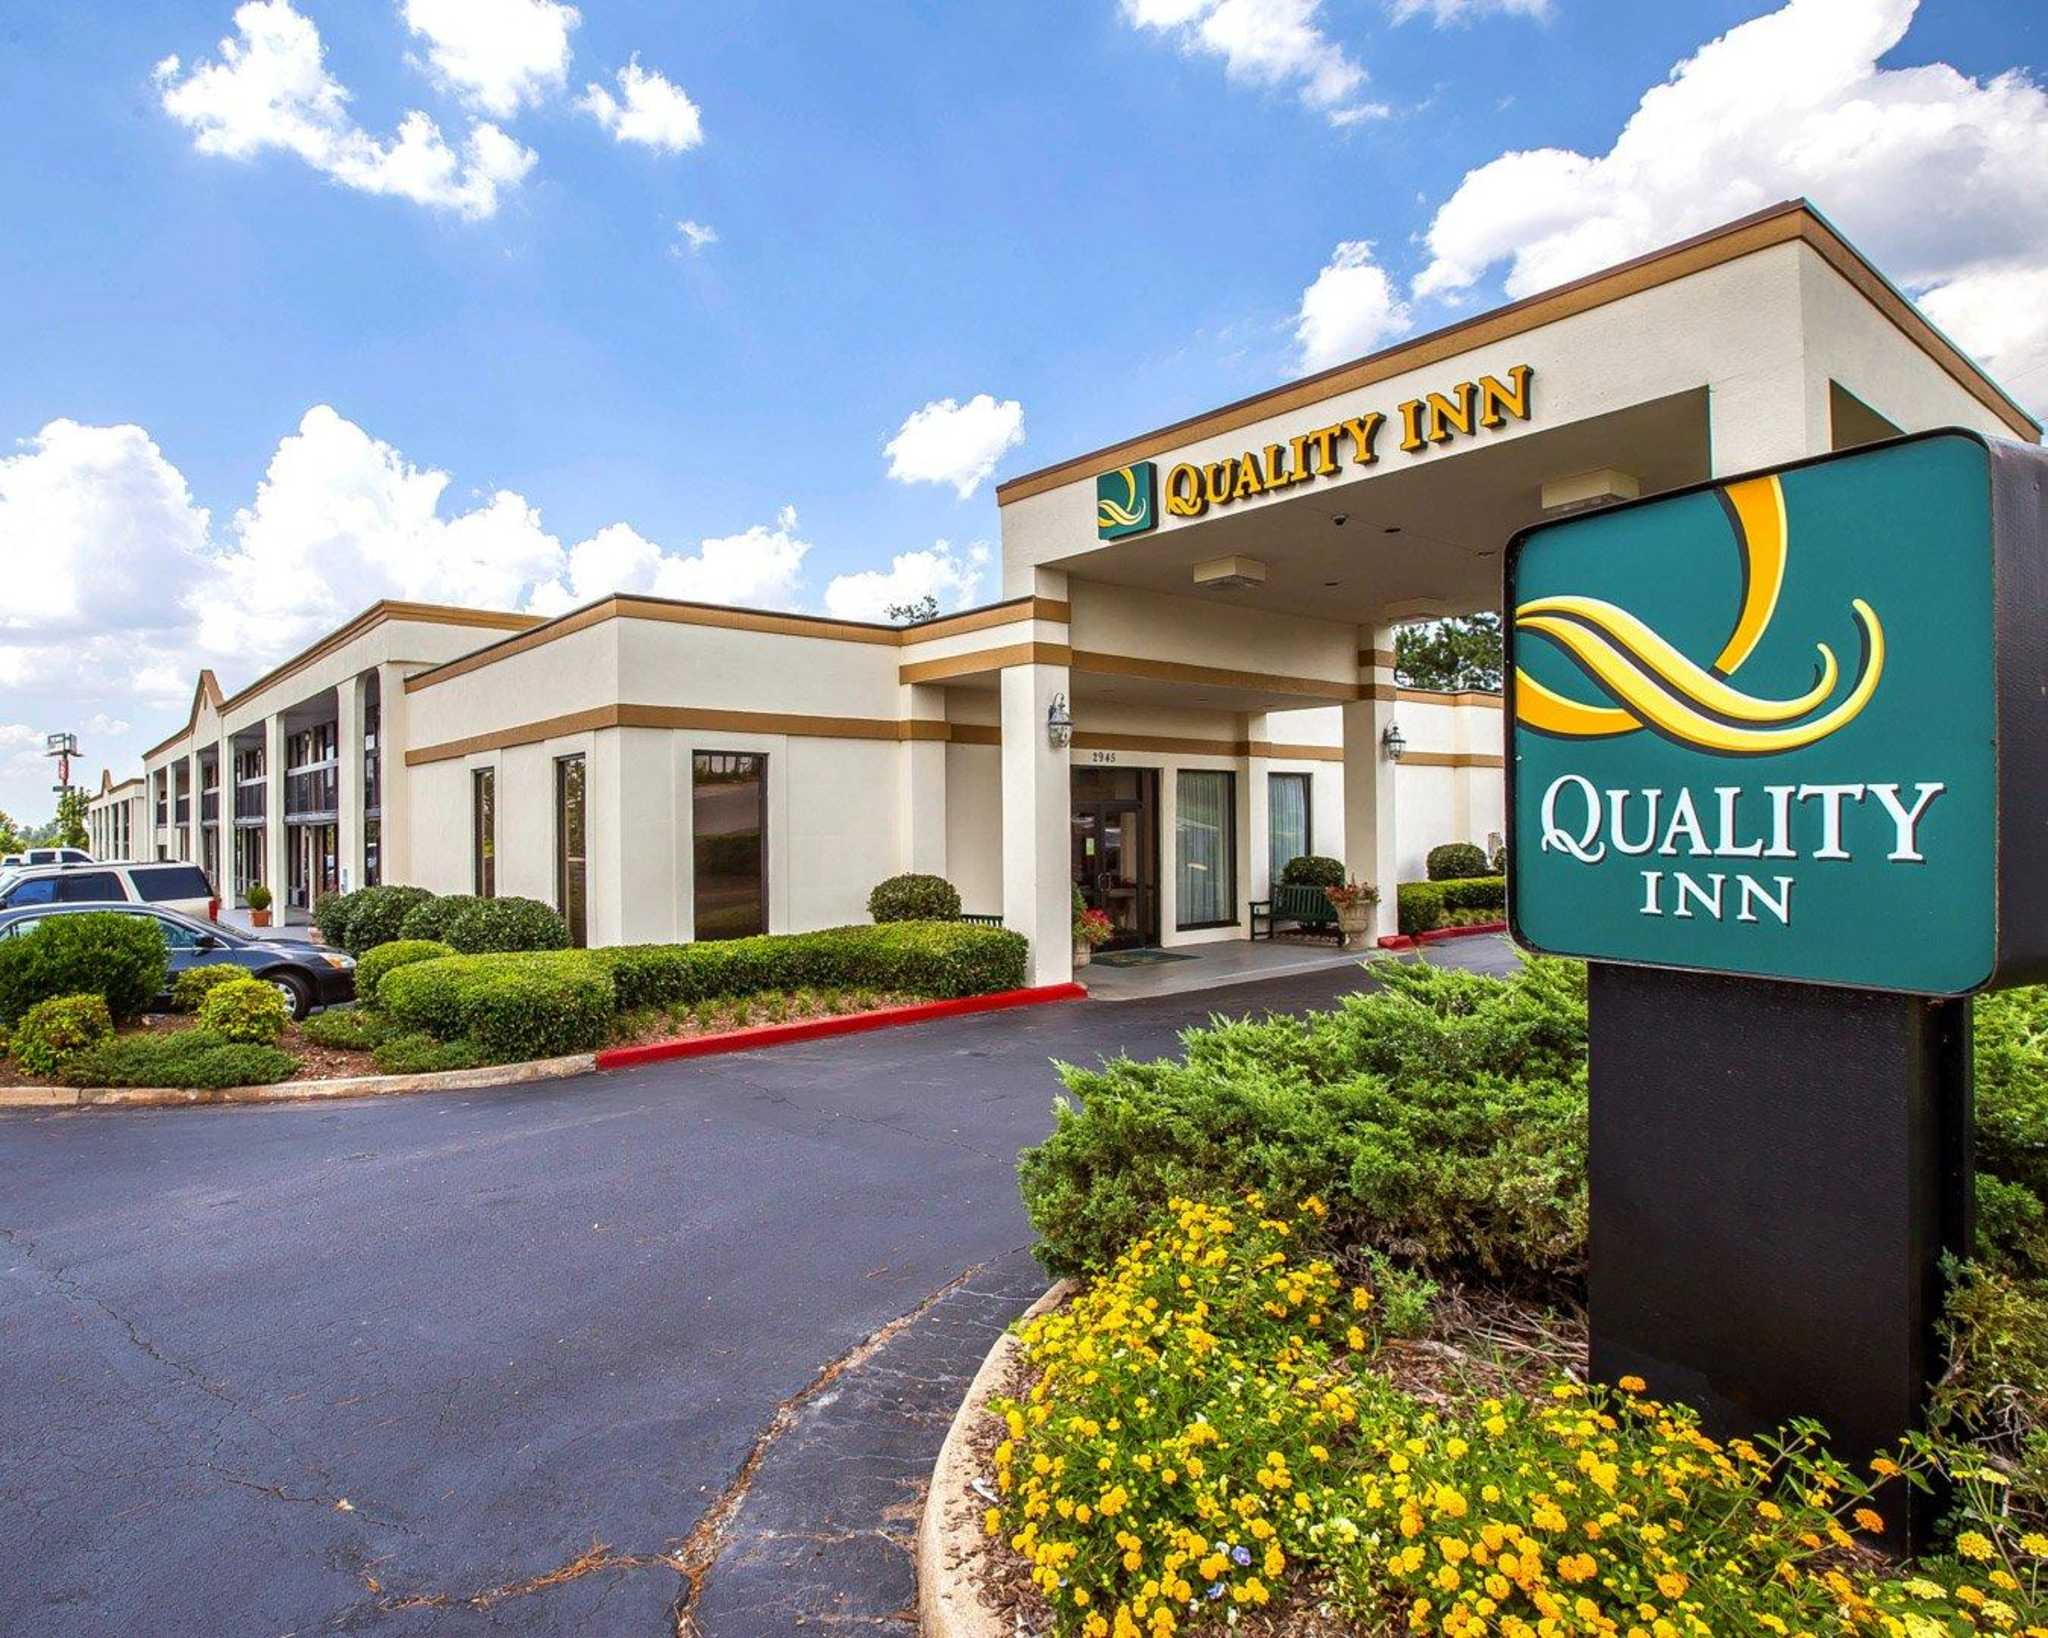 Quality inn suwanee georgia ga for Quality hotel